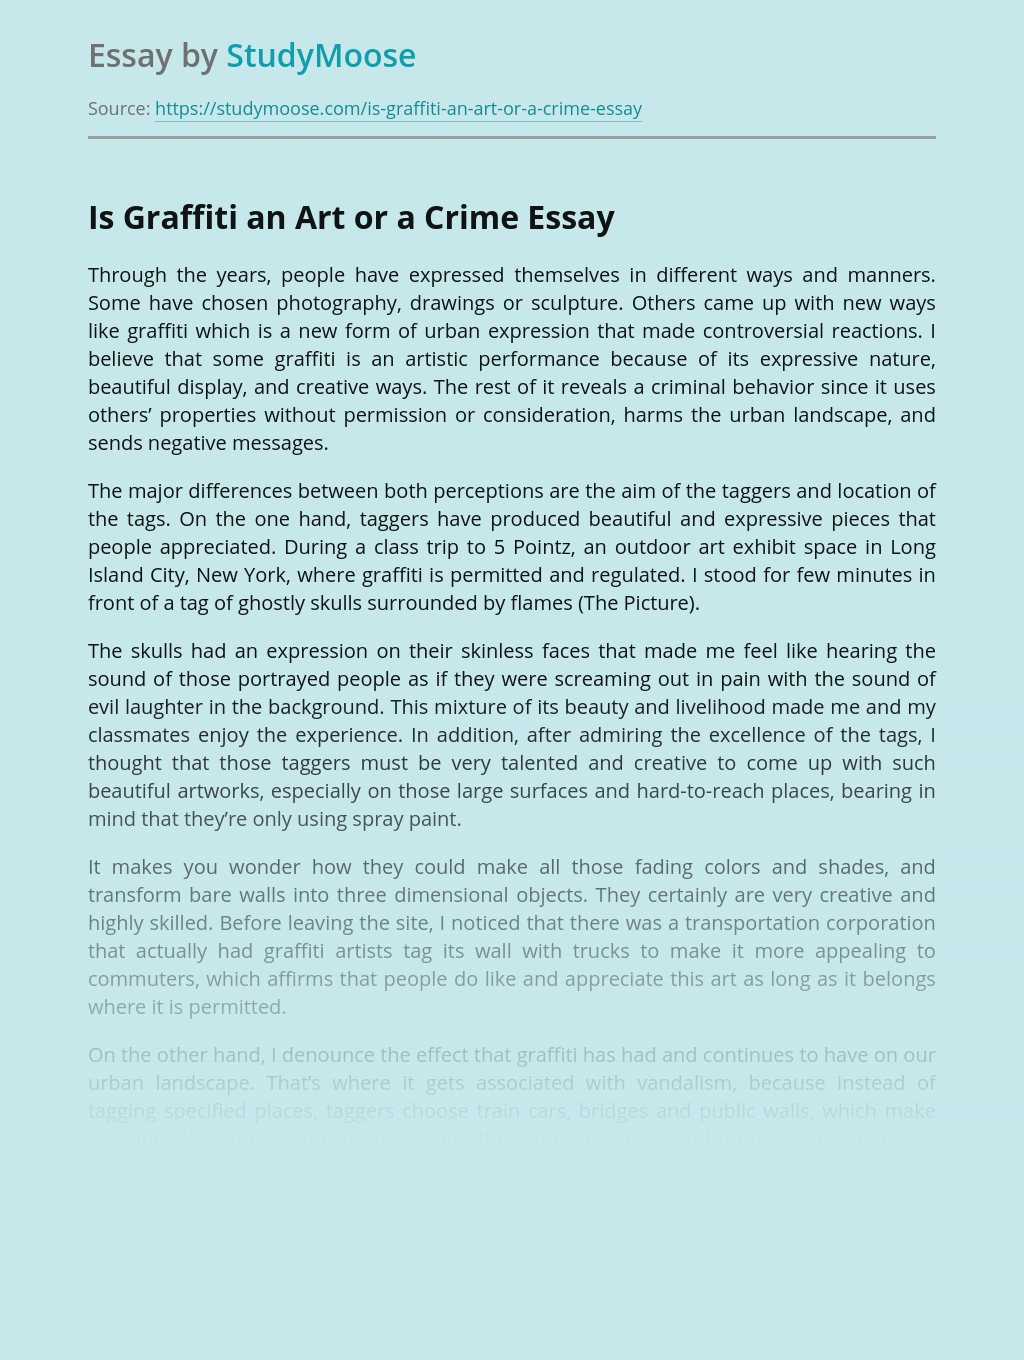 Is Graffiti an Art or a Crime